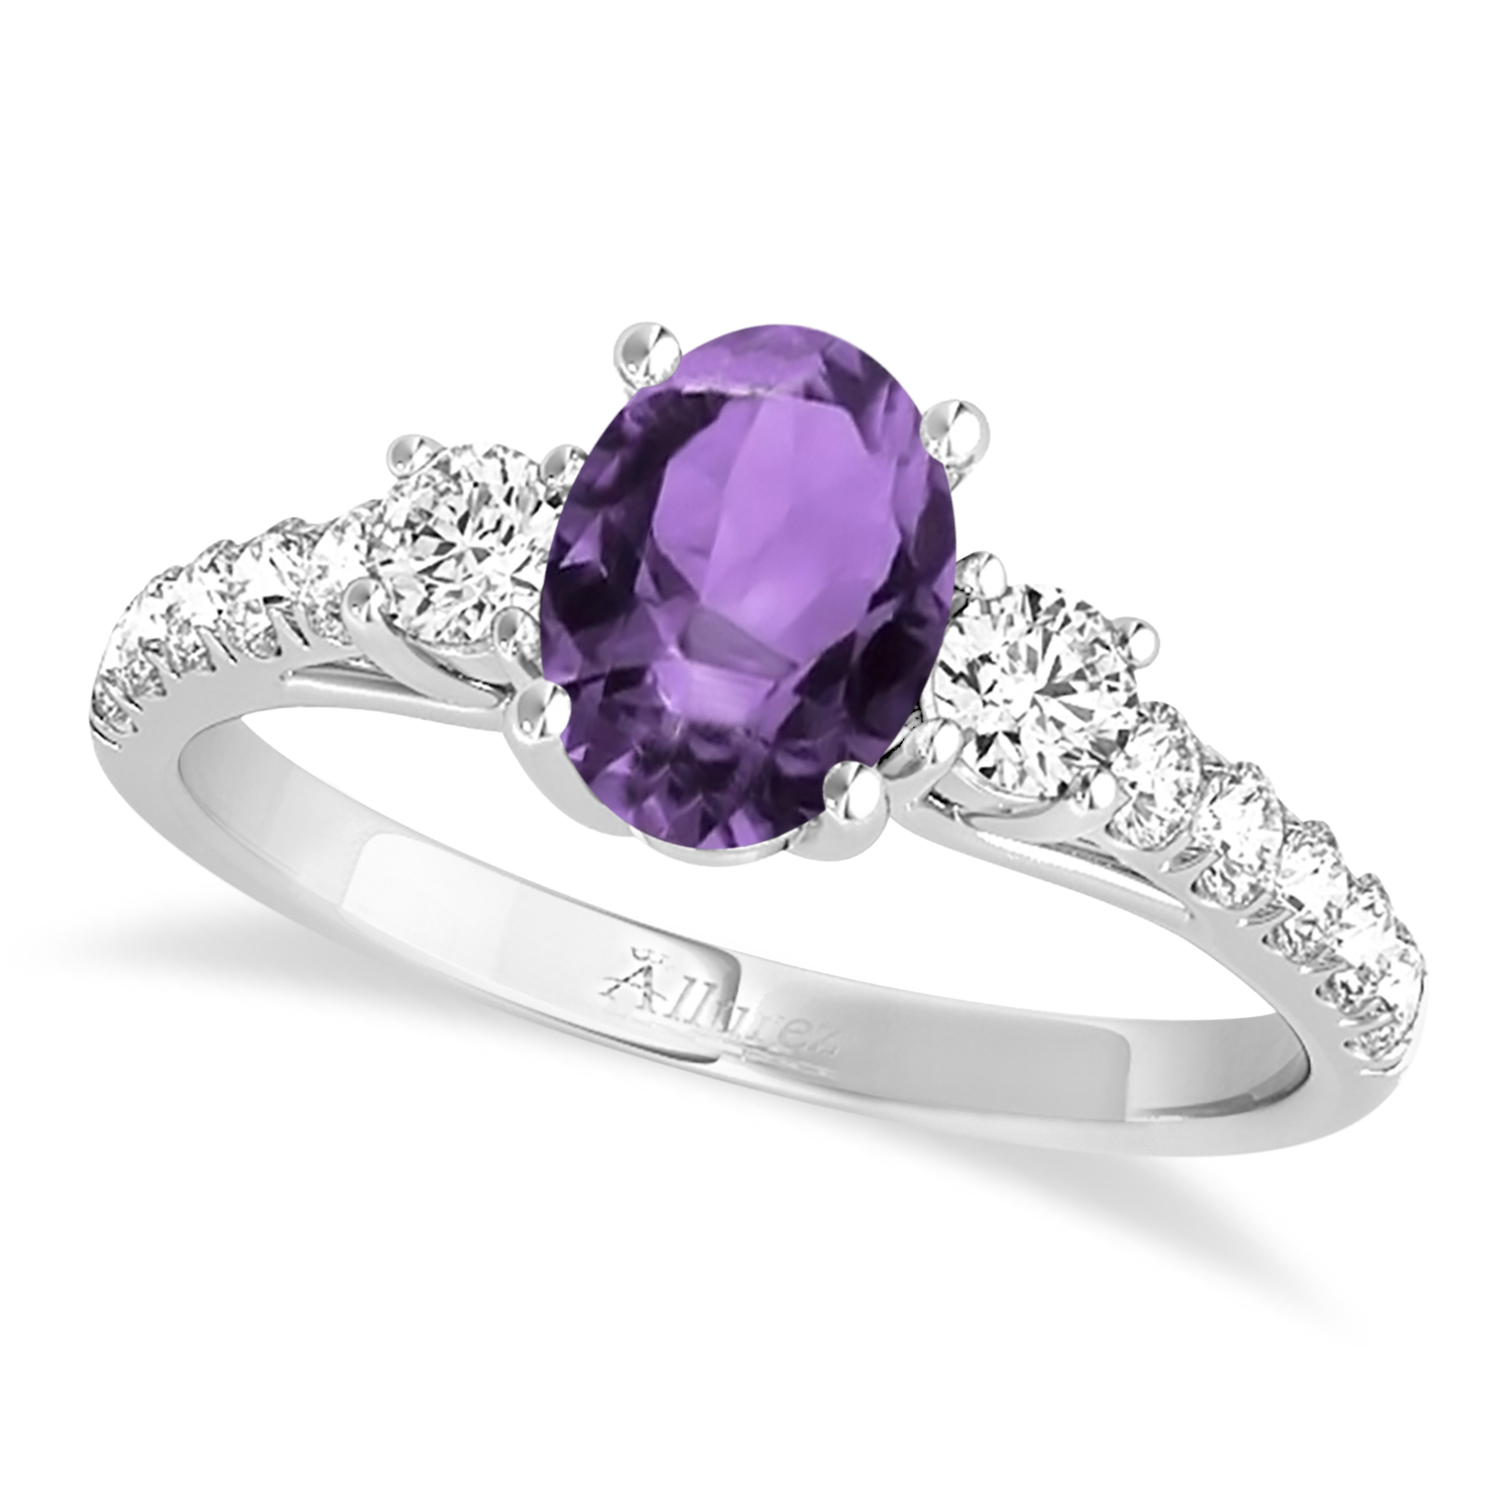 Oval Cut Amethyst & Diamond Engagement Ring 14k White Gold (1.40ct)